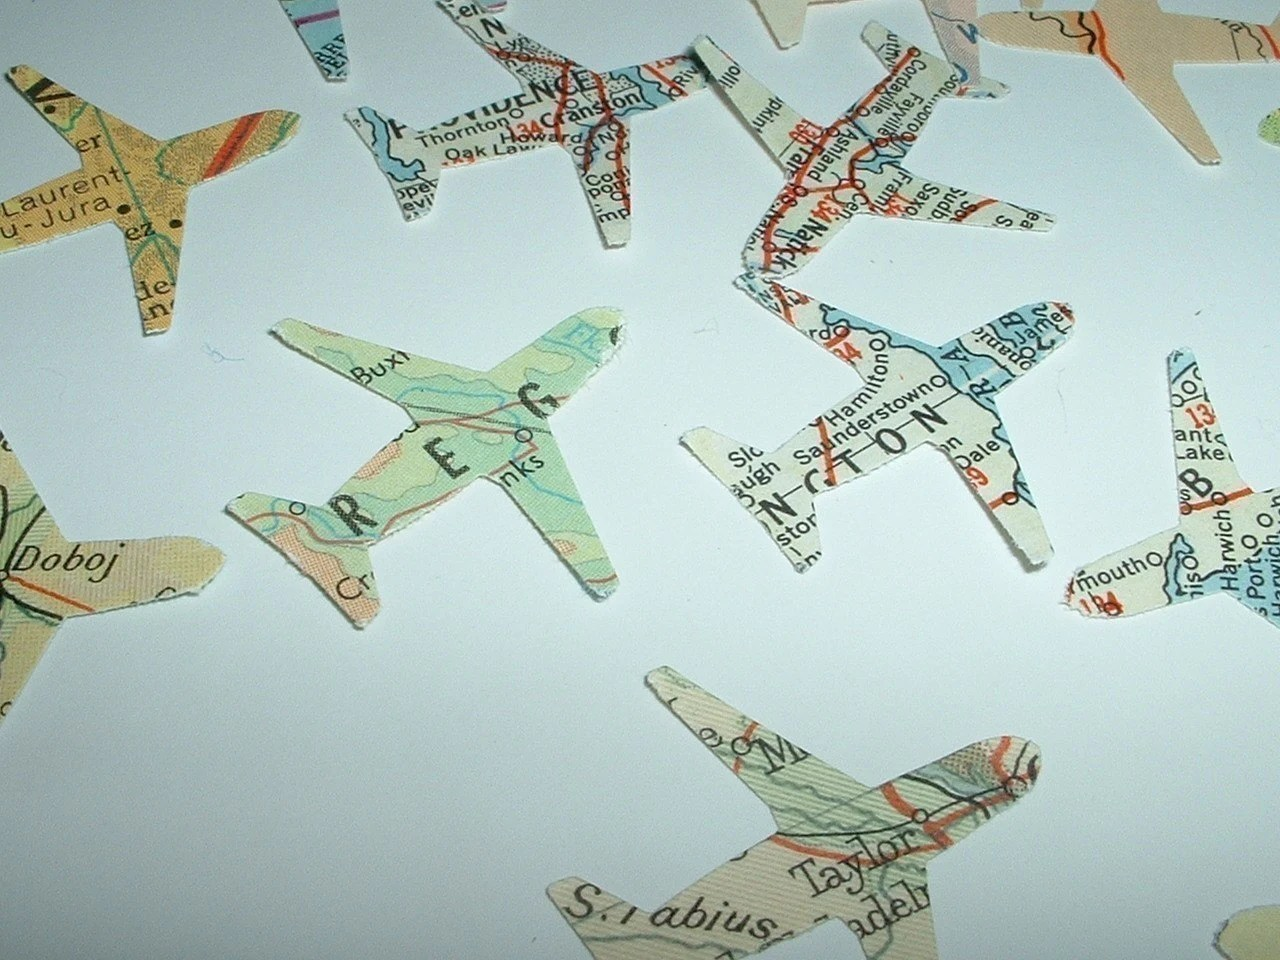 100 AIRPLANES Vintage Atlas Map Punches for Travel Theme Projects and Parties